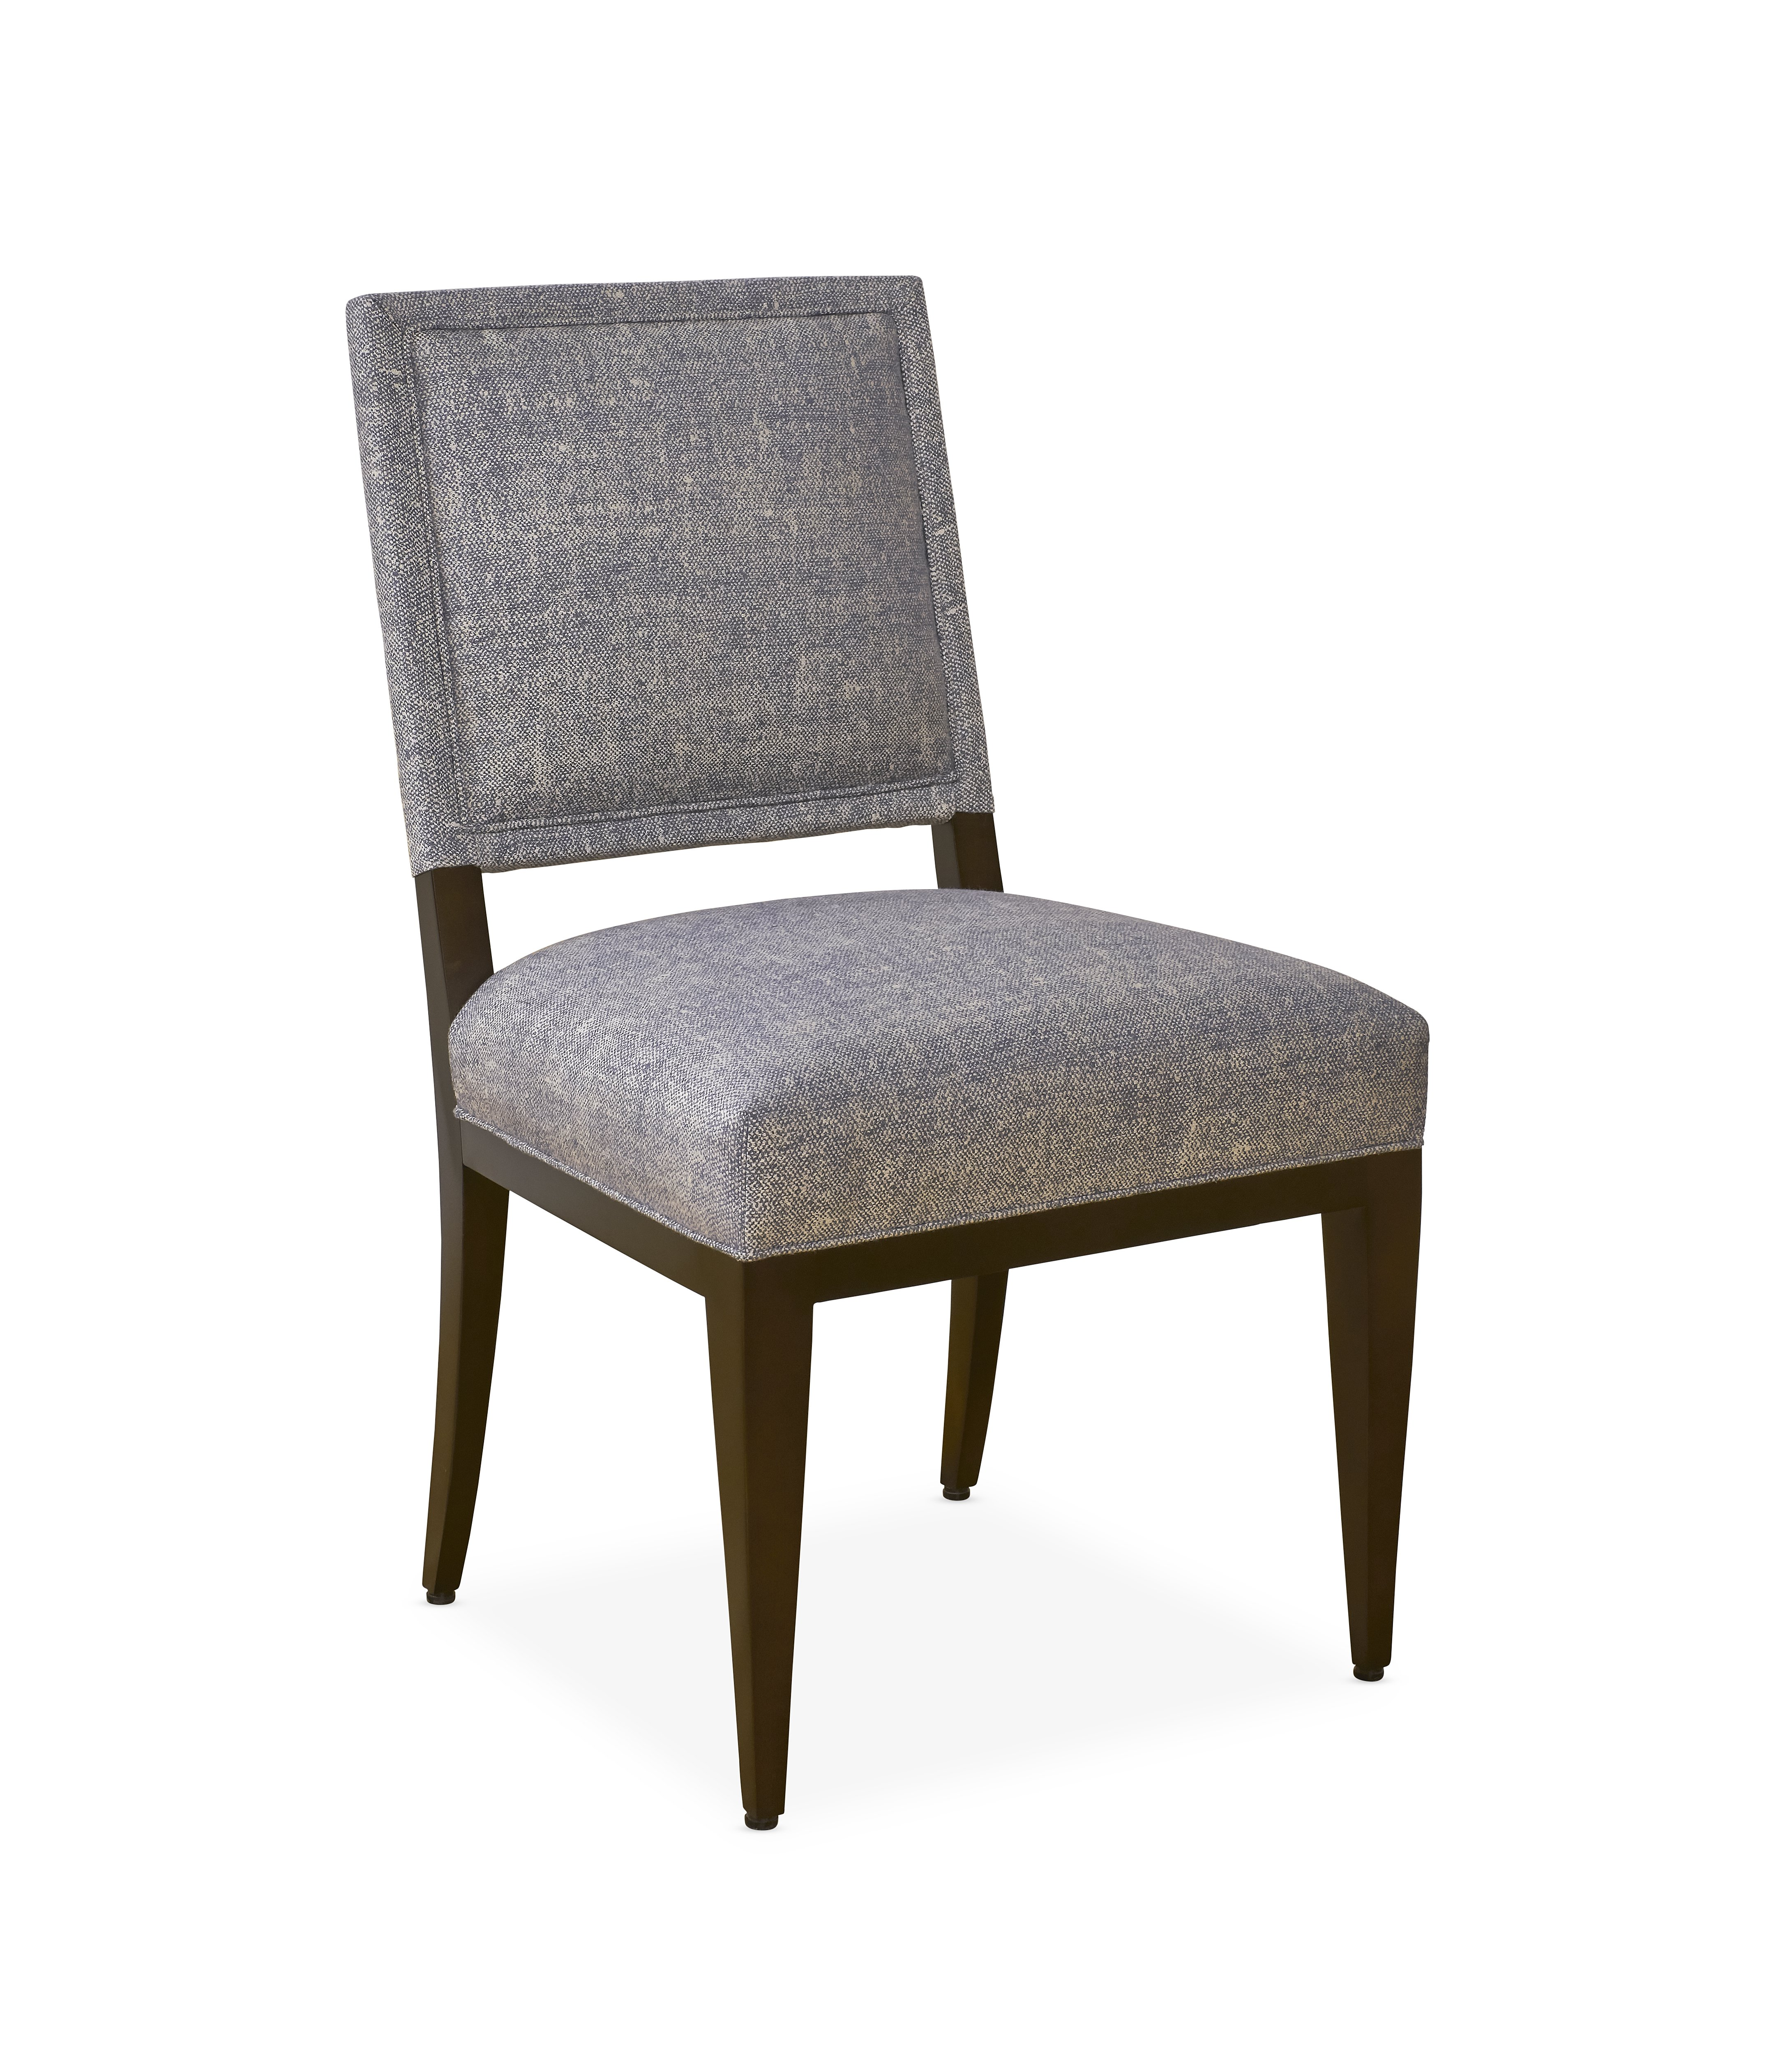 About A Chair 12 Side Chair.Knollwood Side Chair Designmaster Furniture